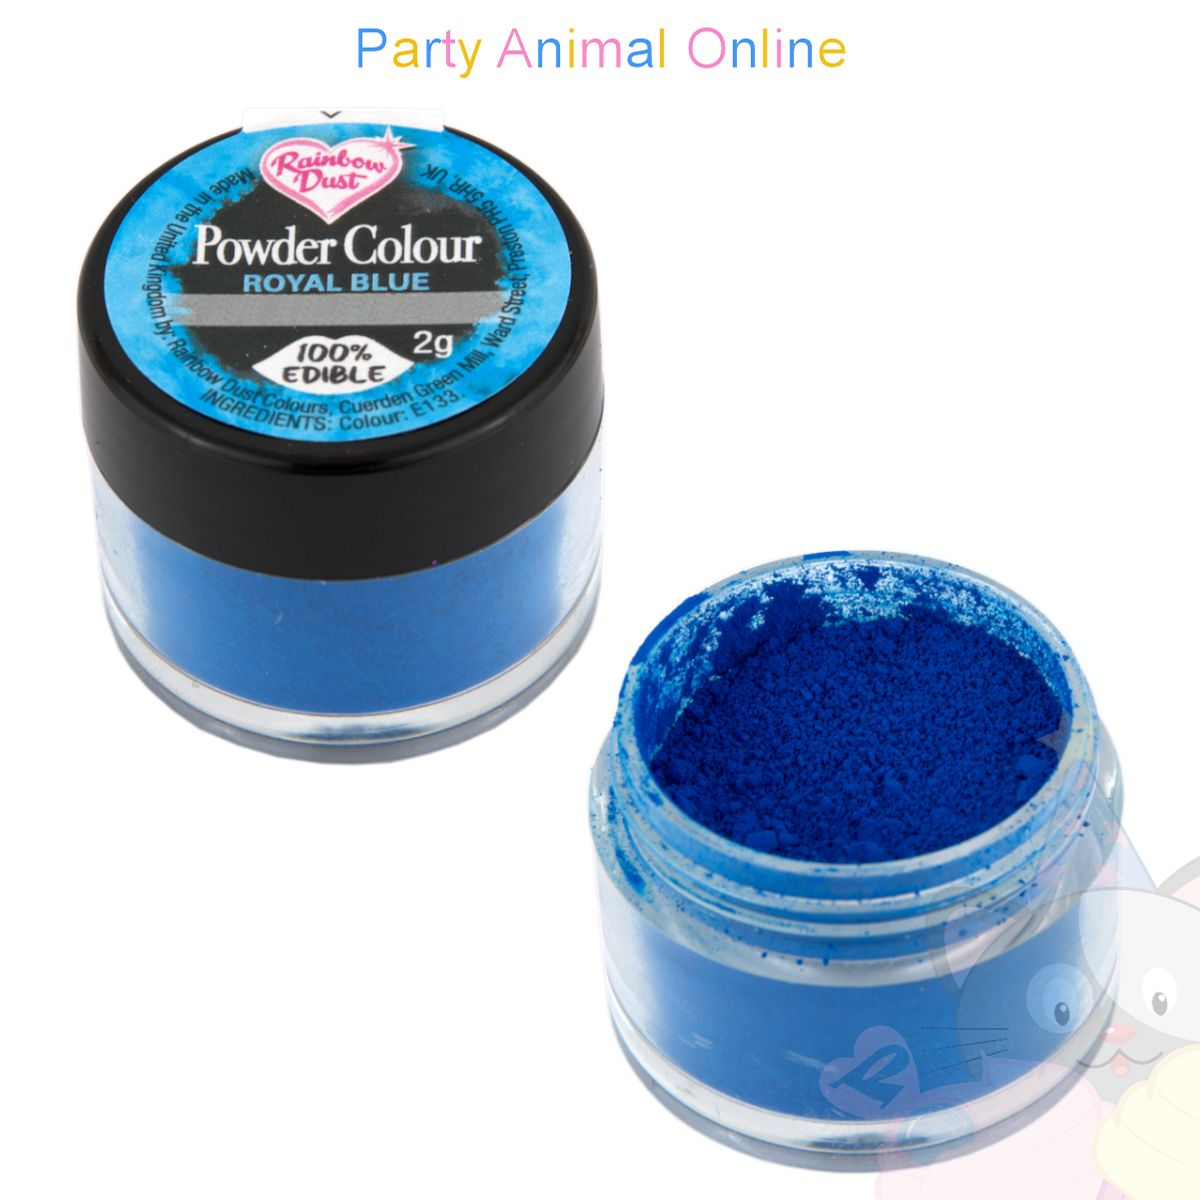 Rainbow Dust Plain and Simple Range - ROYAL BLUE